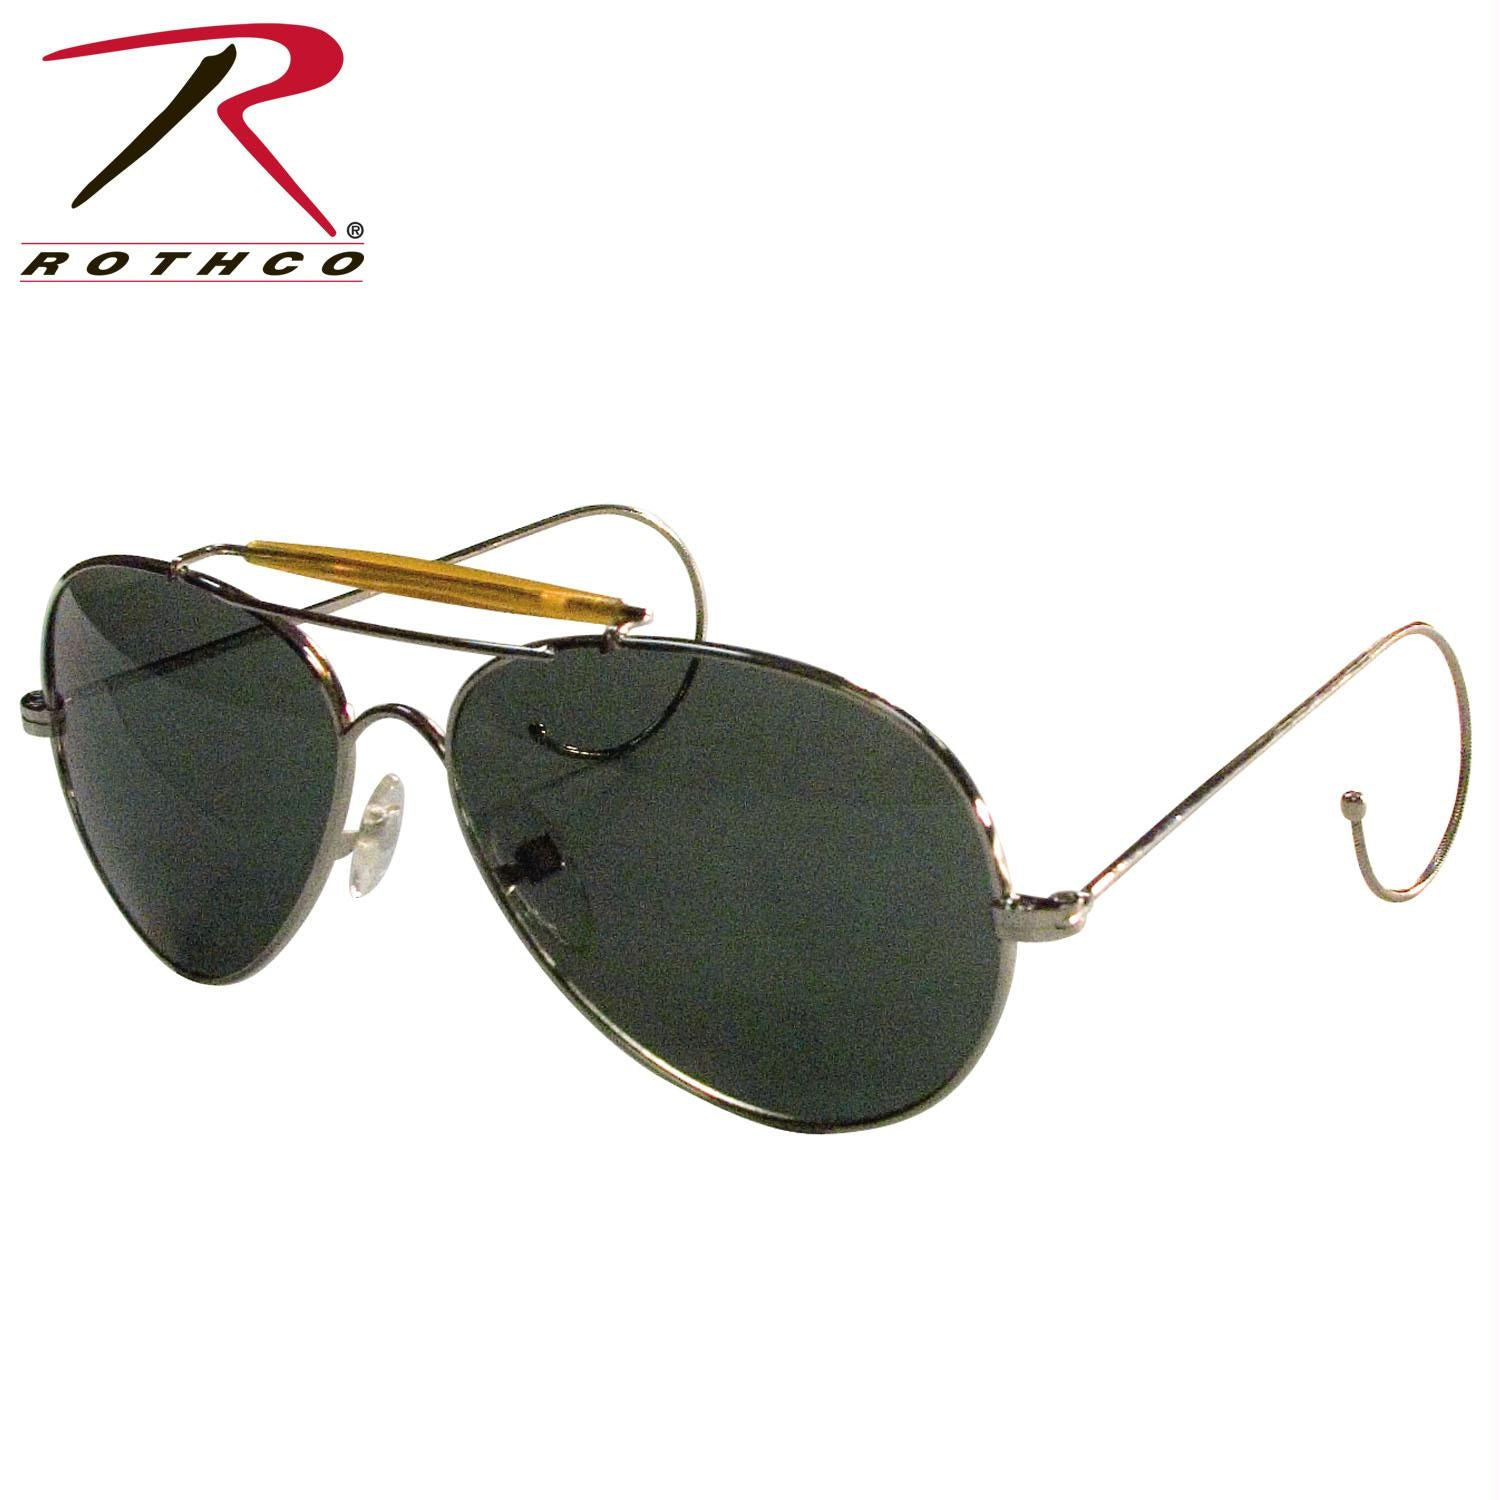 Rothco Aviator Air Force Style Sunglasses - Green / Military Printed Case & Box